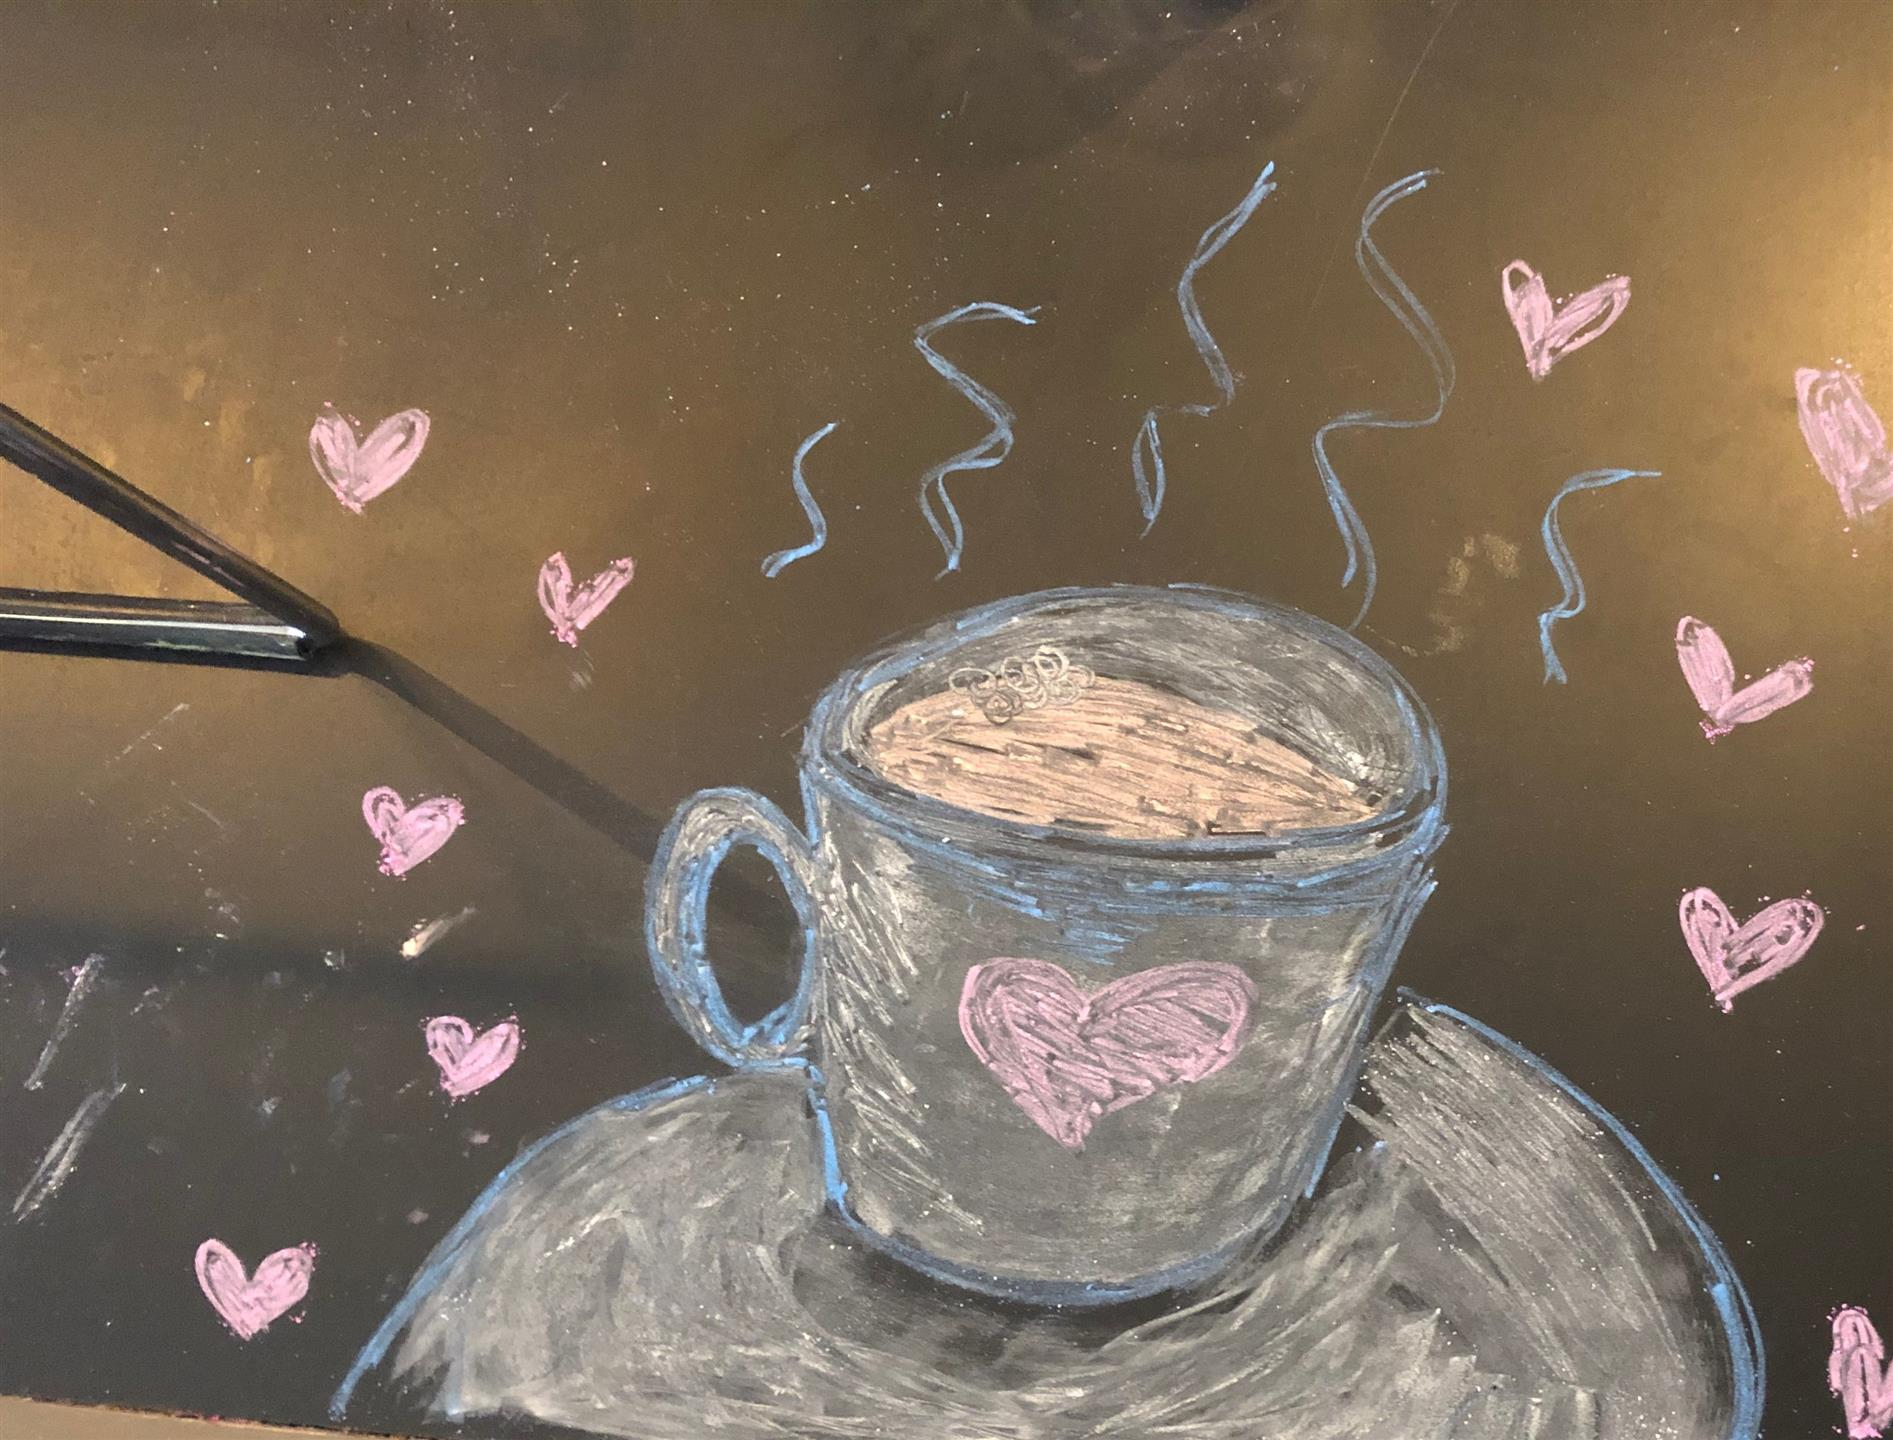 chalk drawing of a cup of coffee and hearts